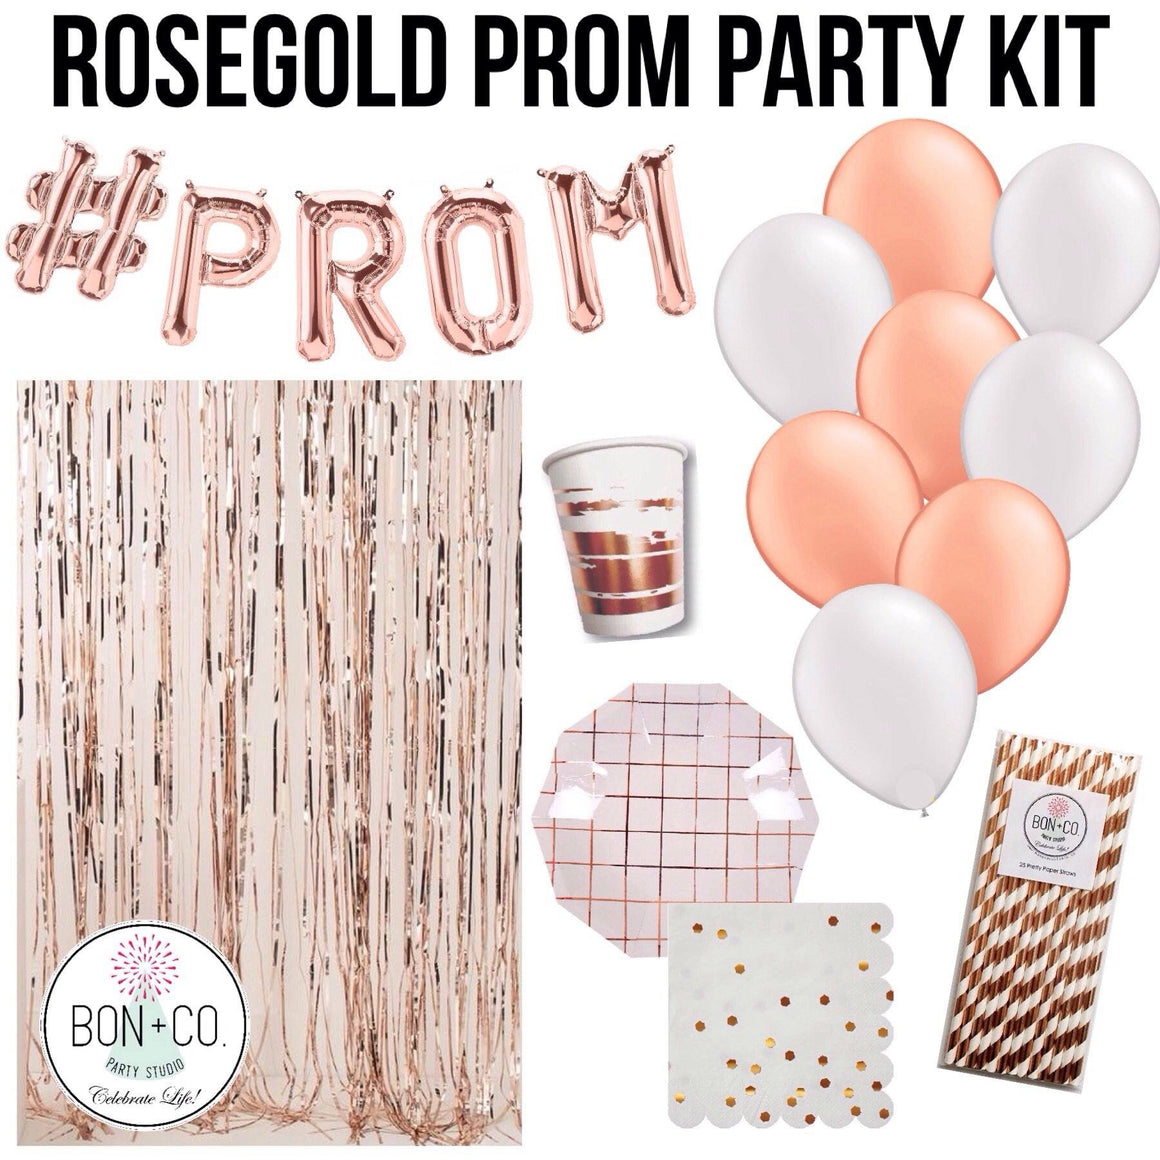 PARTY KIT - PROM ROSEGOLD